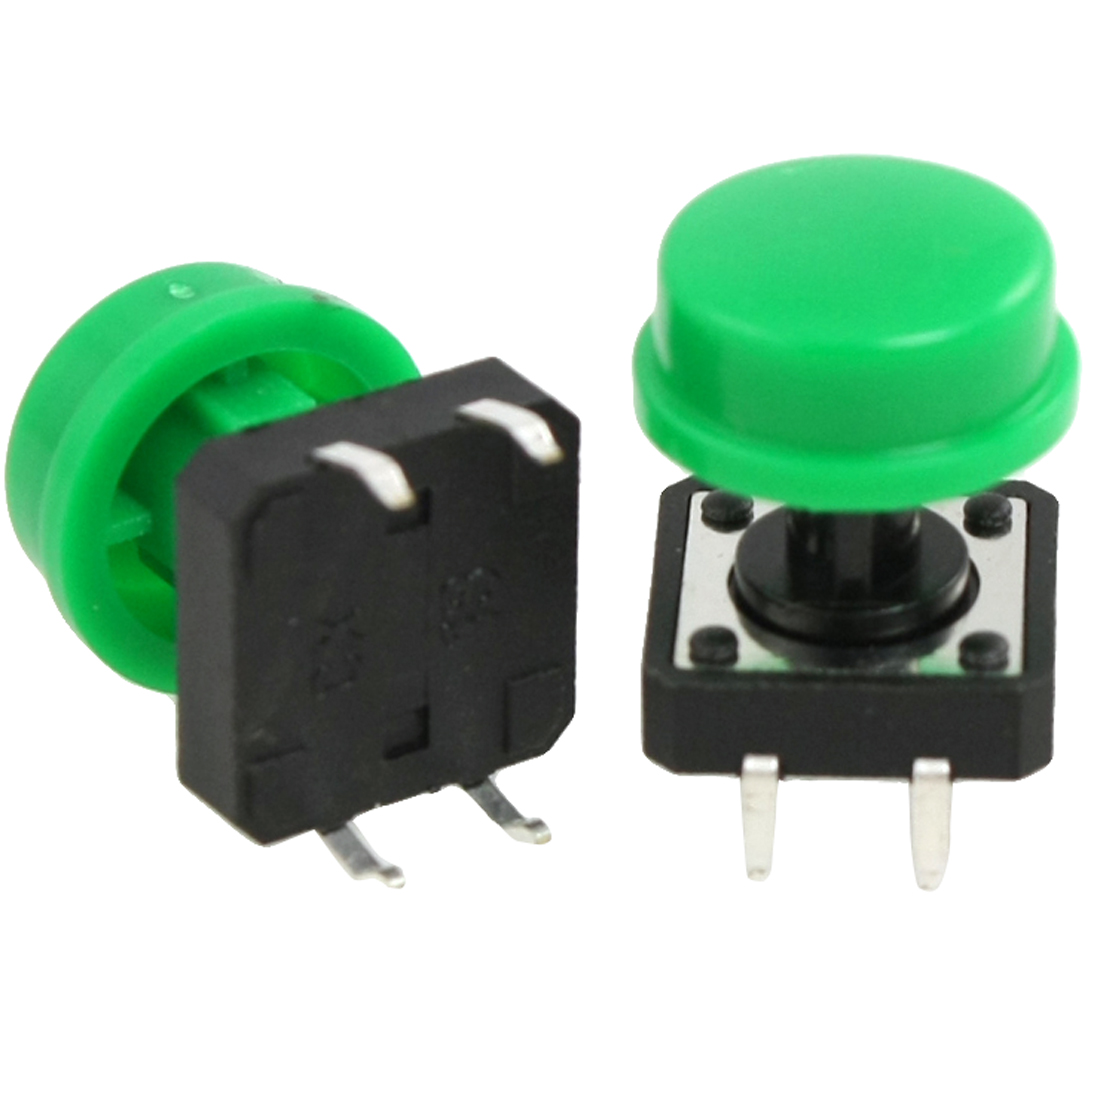 10 PCS 12 x 12mm x 12mm Green Round Cap Momentary Tact Tactile Push Button Switch 4 Pin